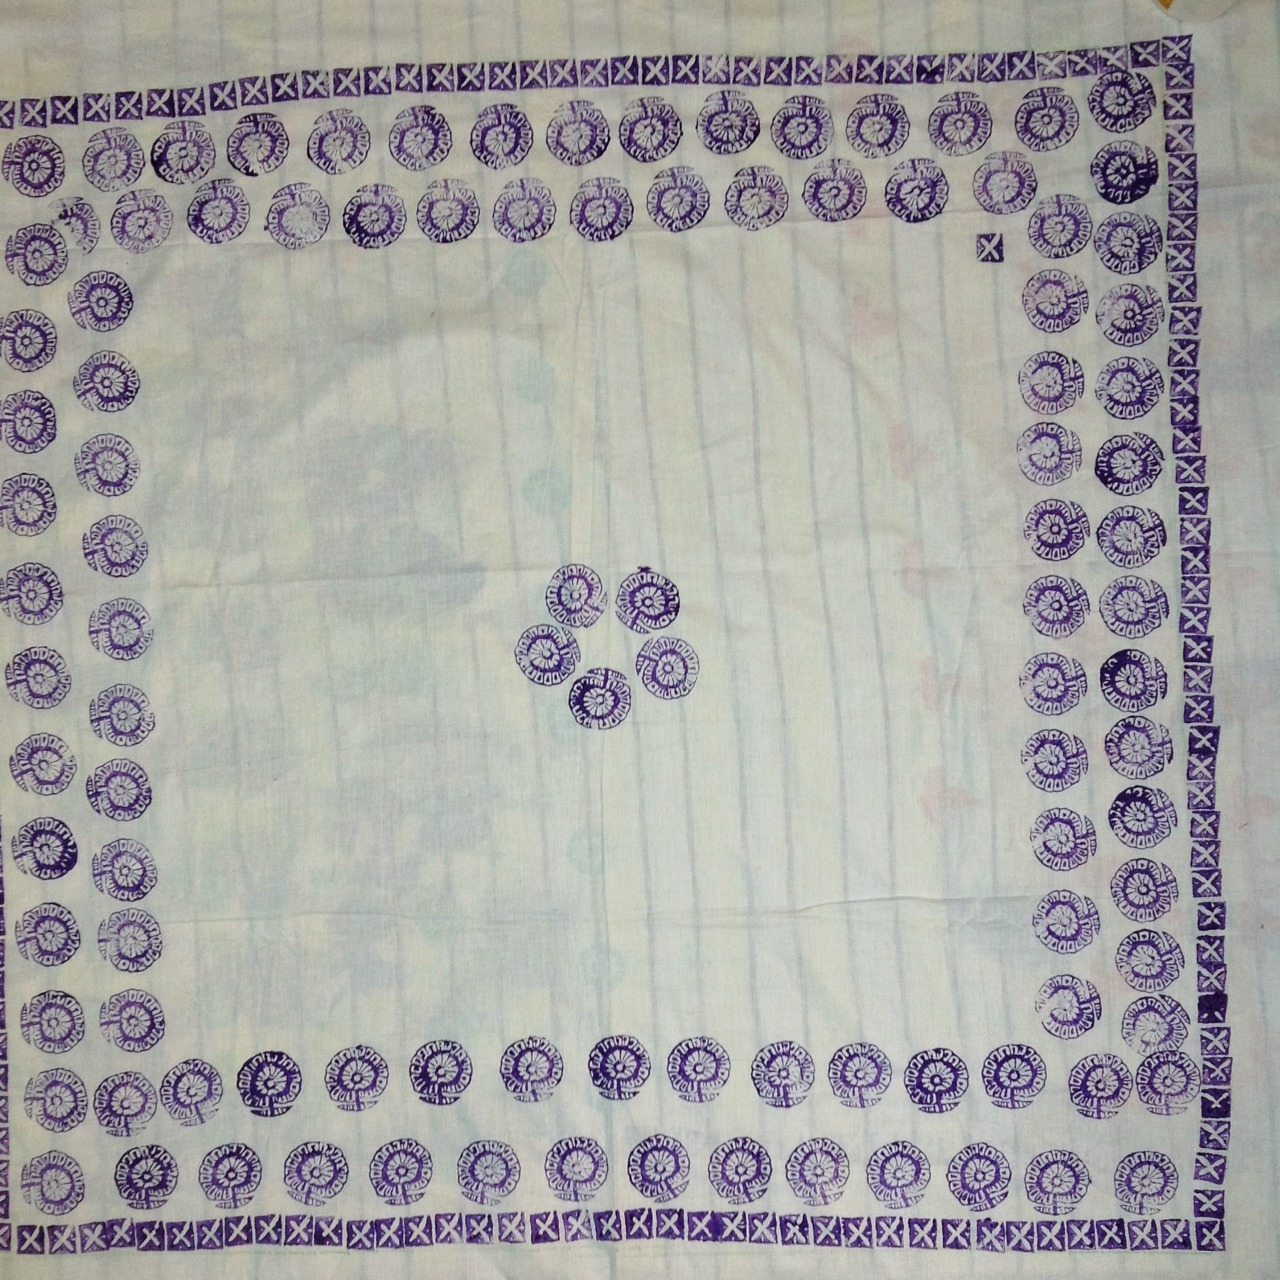 An unfinished hand block printed table cover in violet floral and geometrical print